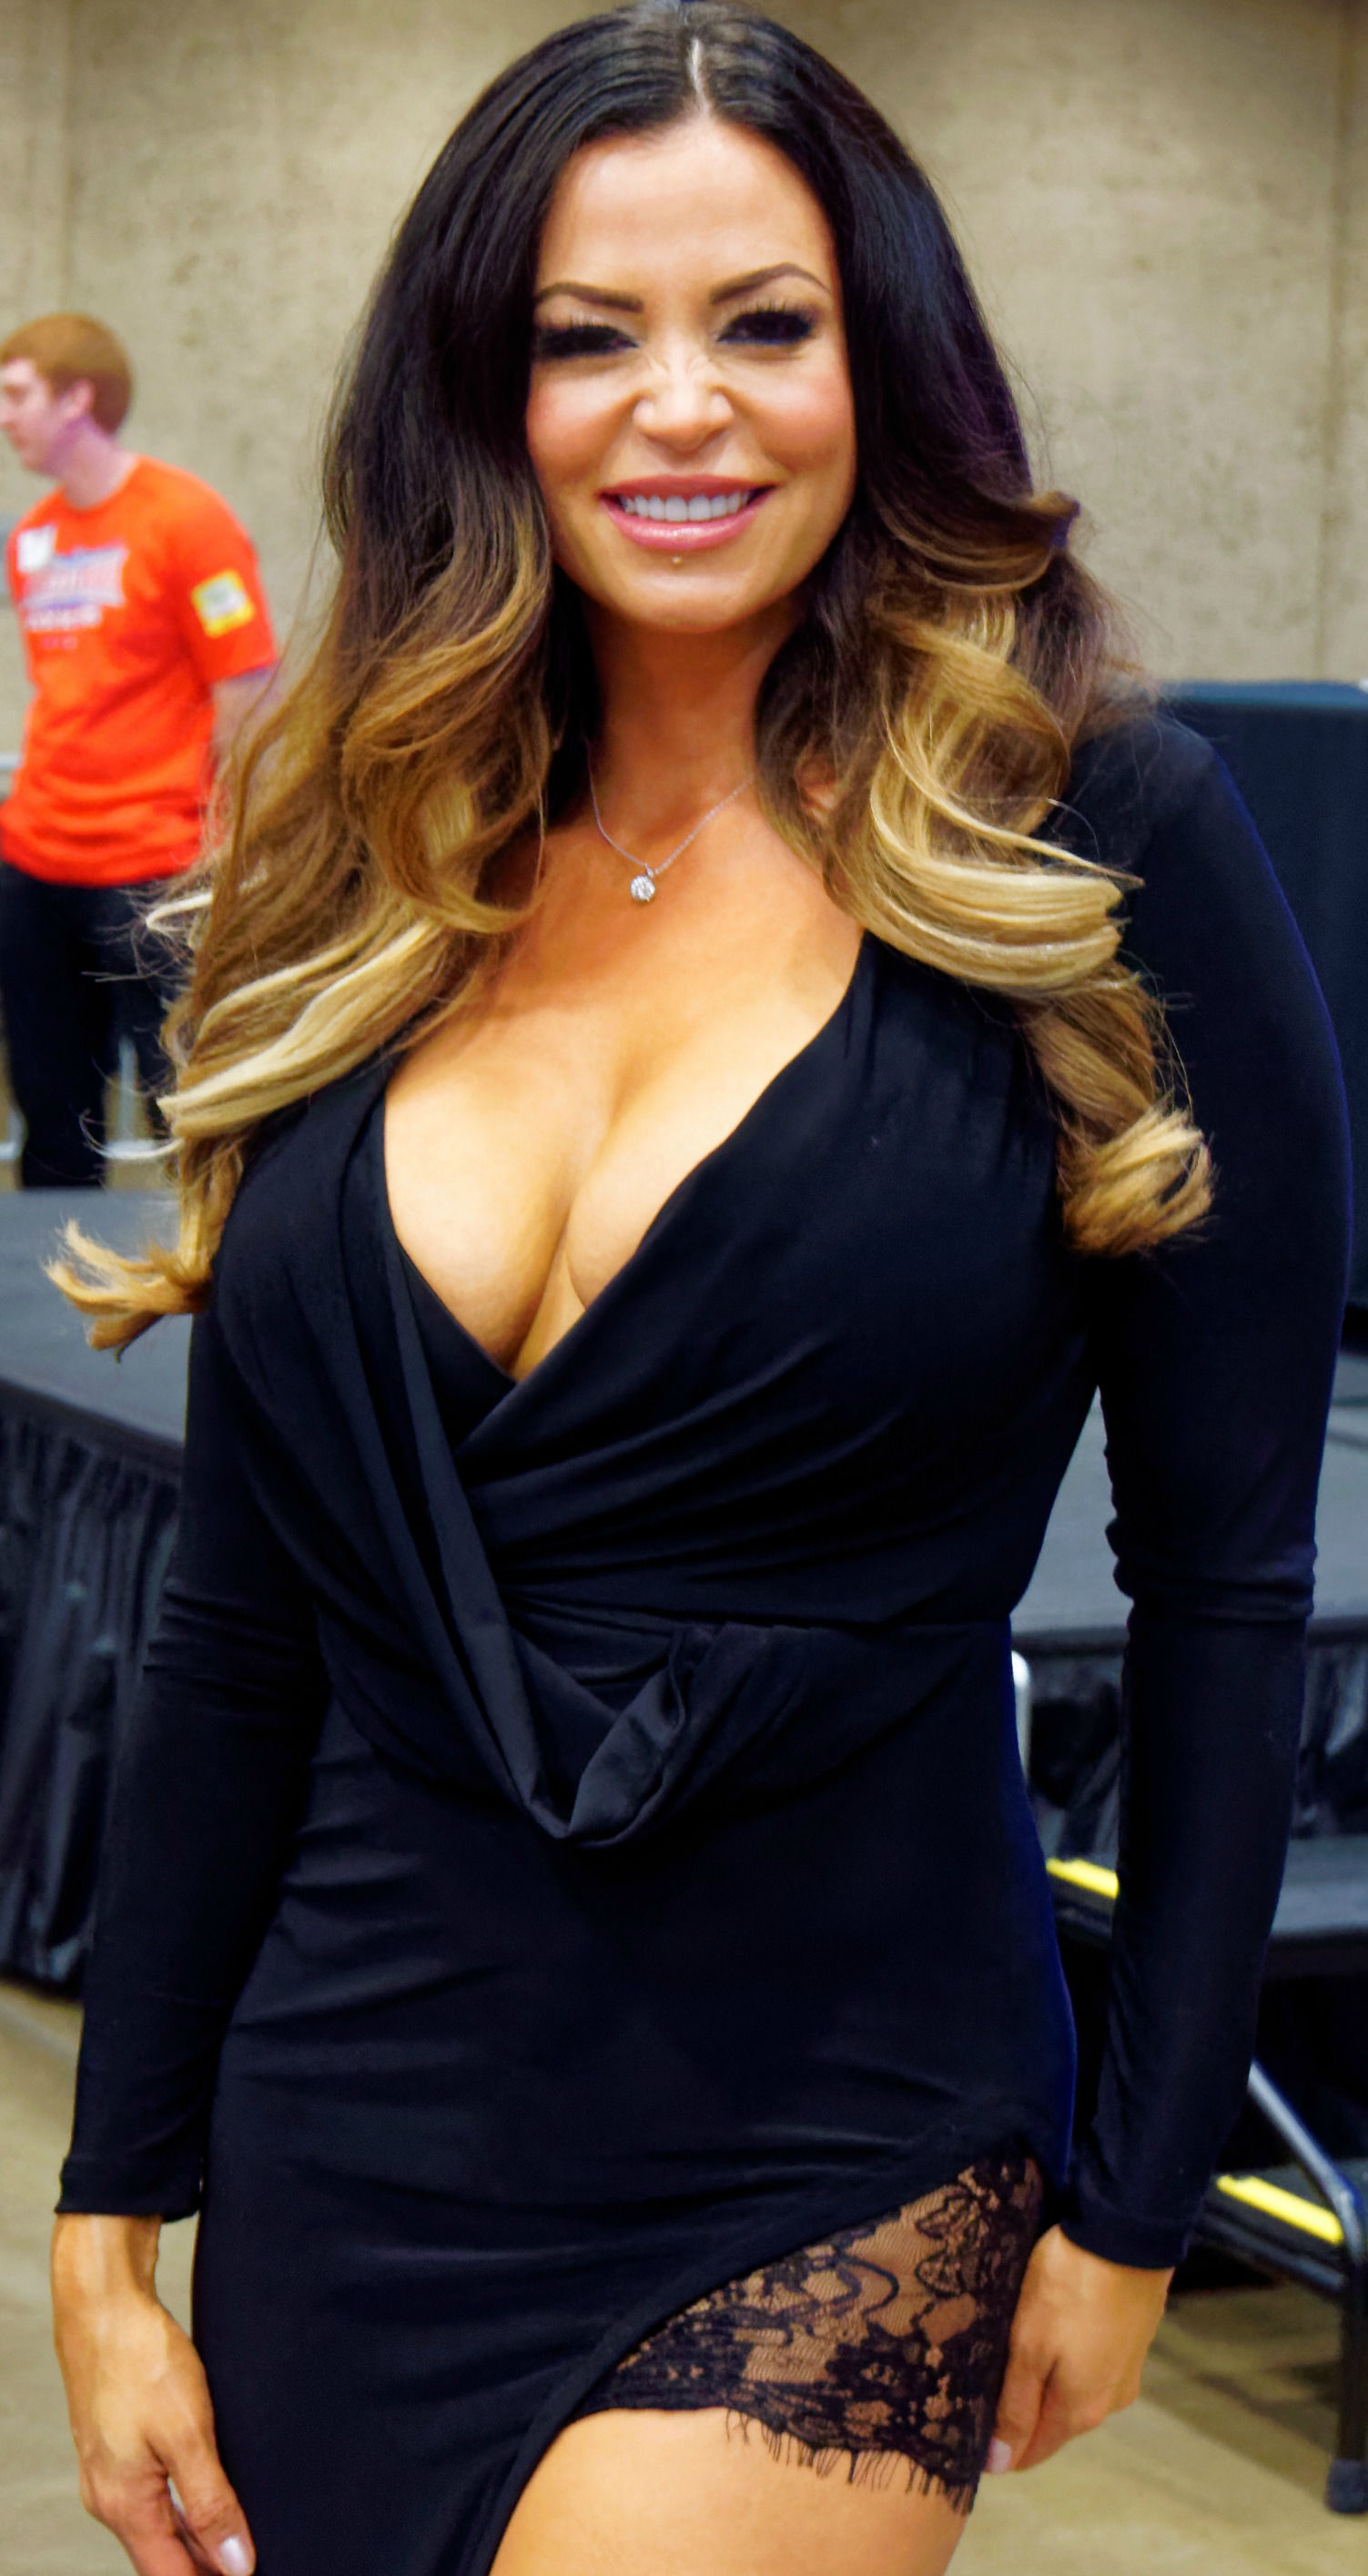 Photo of Candice Michelle: Model, actress, and retired professional wrestler